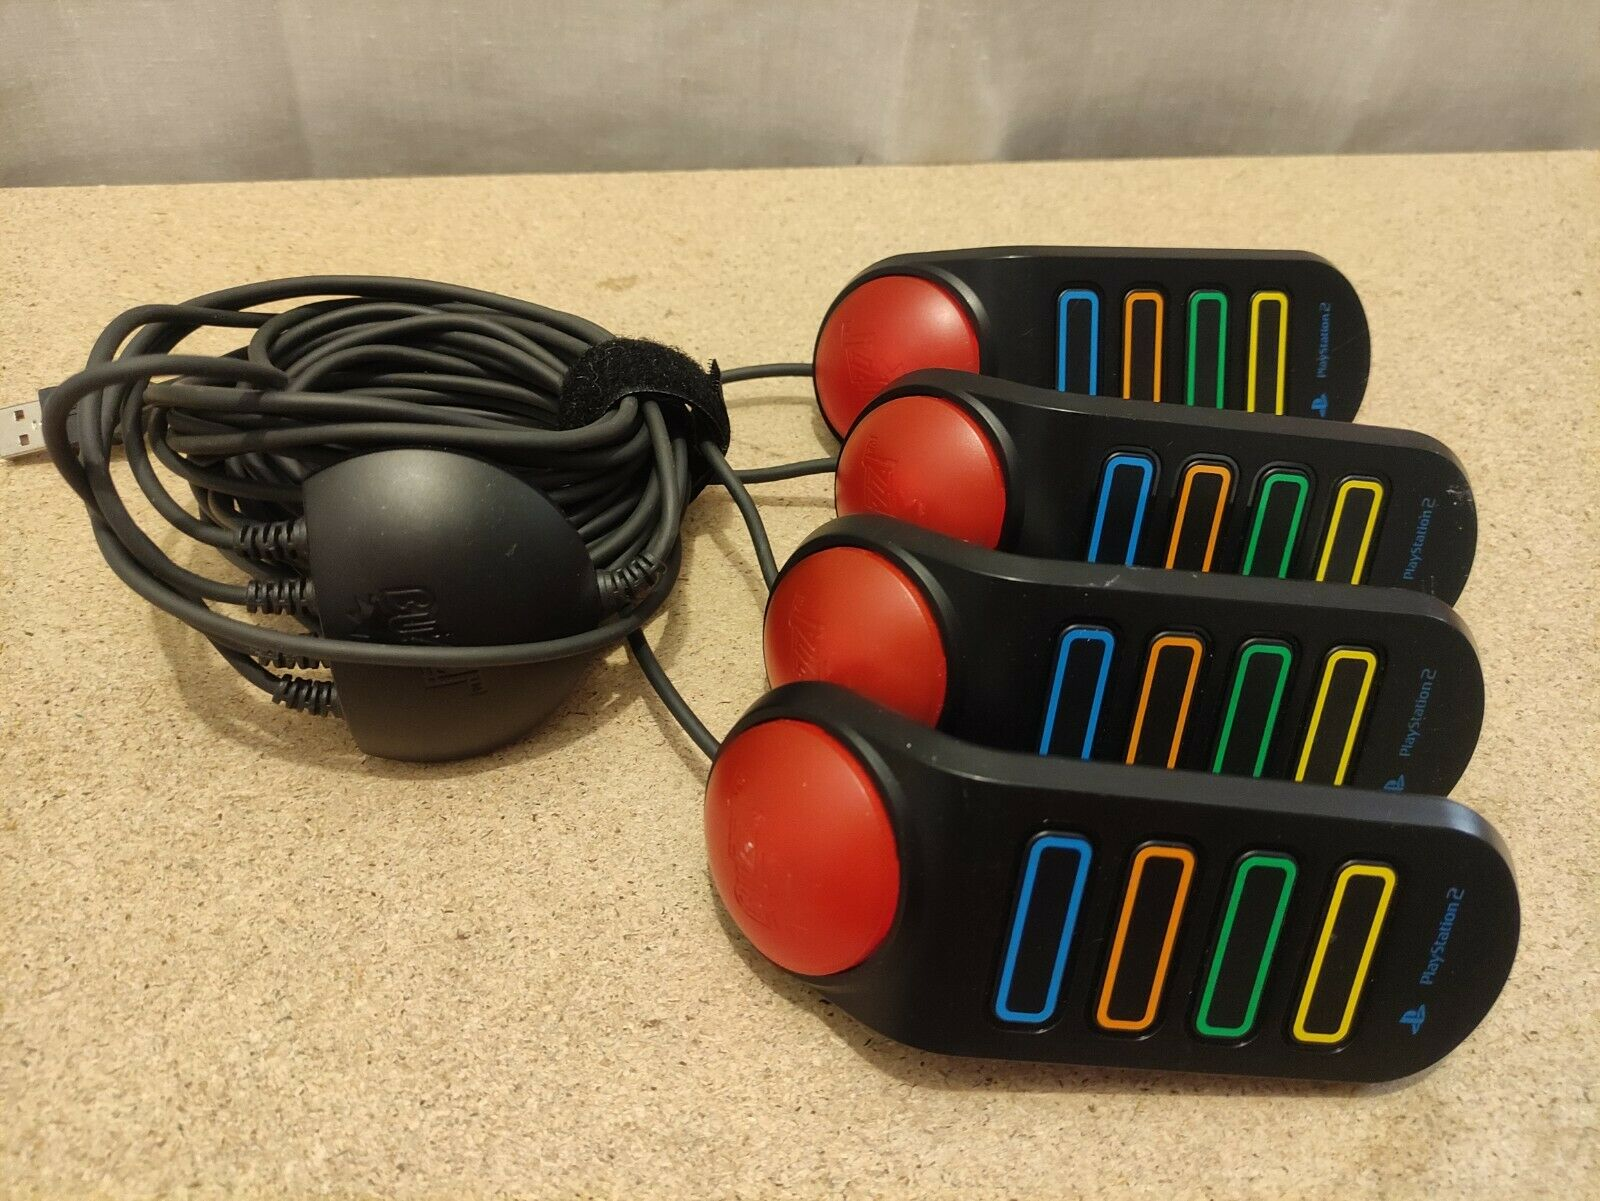 PS2 Buzz Controllers Wired Buzzers X 4 Playstation 2 3 Compatible Tested (#8)